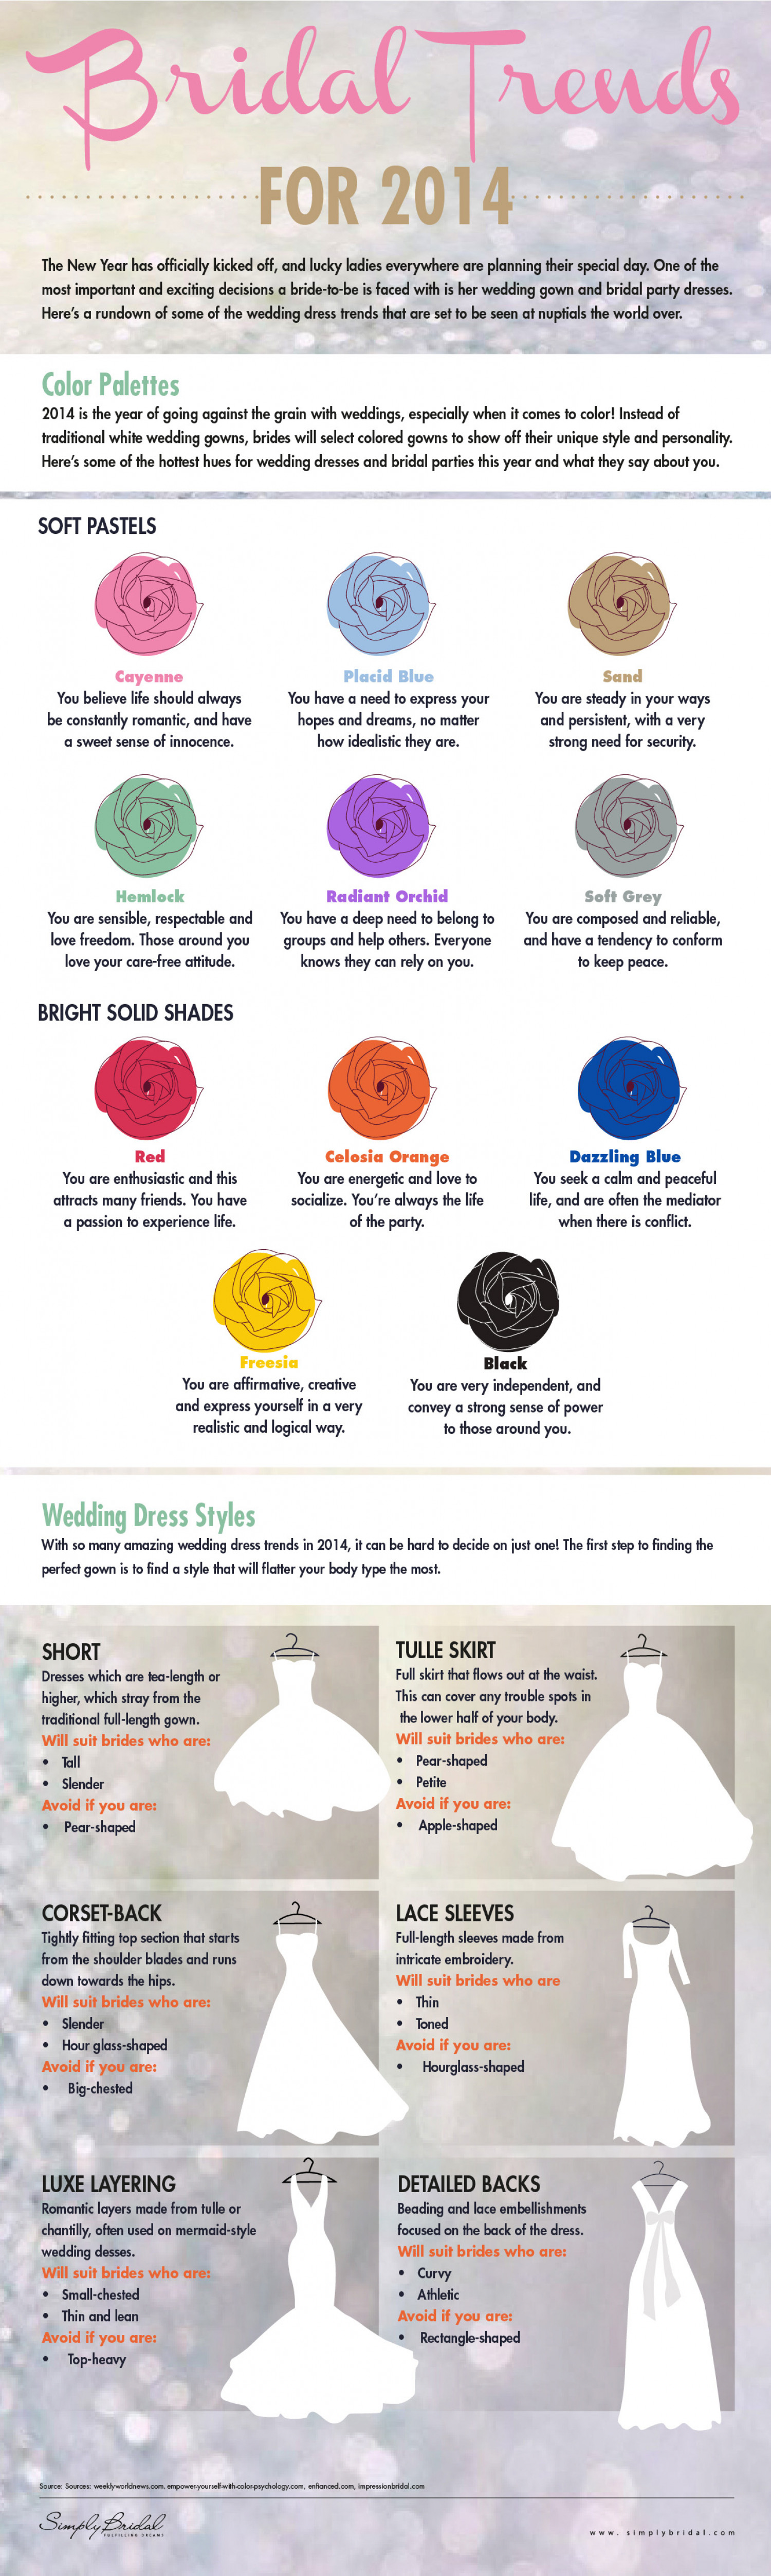 2014 Bridal Trends Infographic